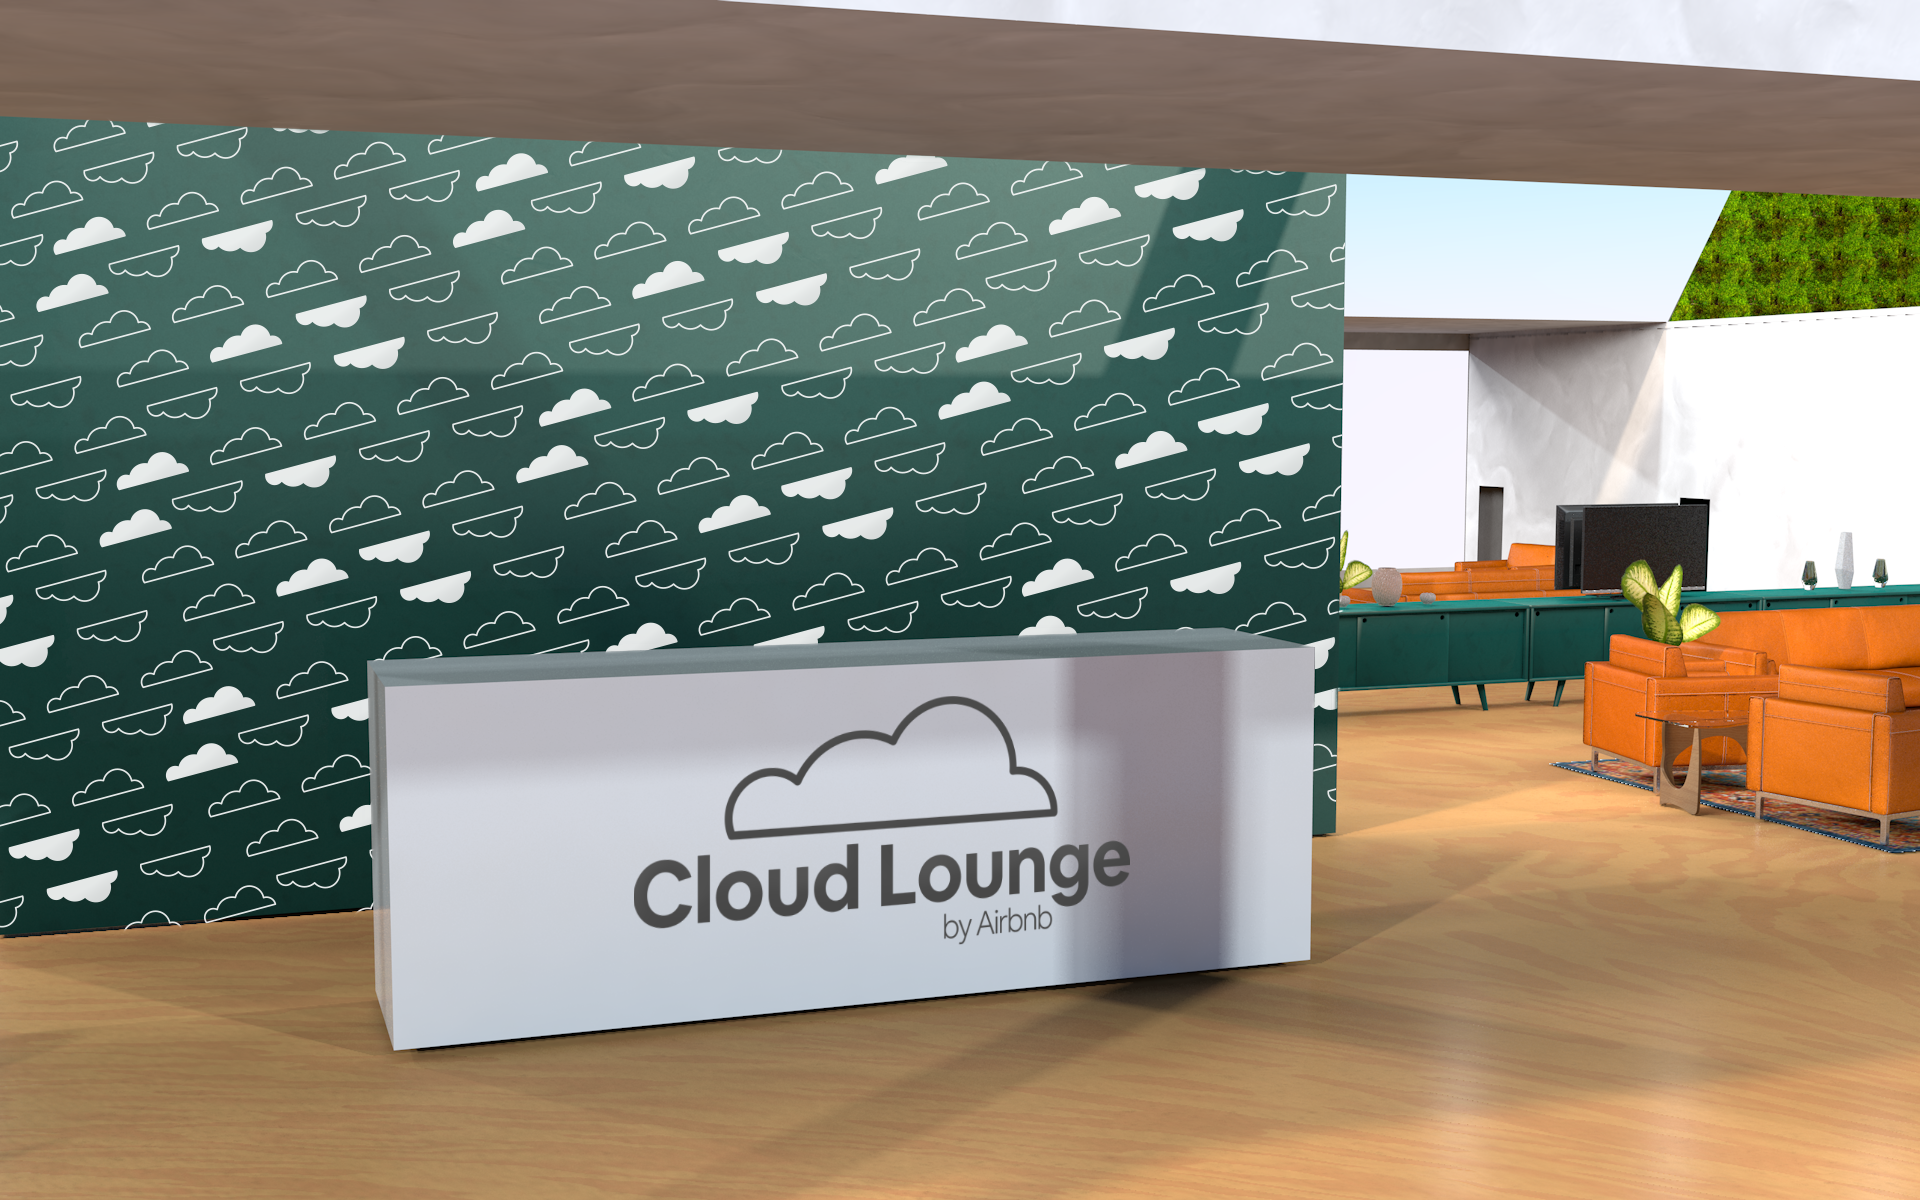 Entrance to the Airbnb Cloud Lounge